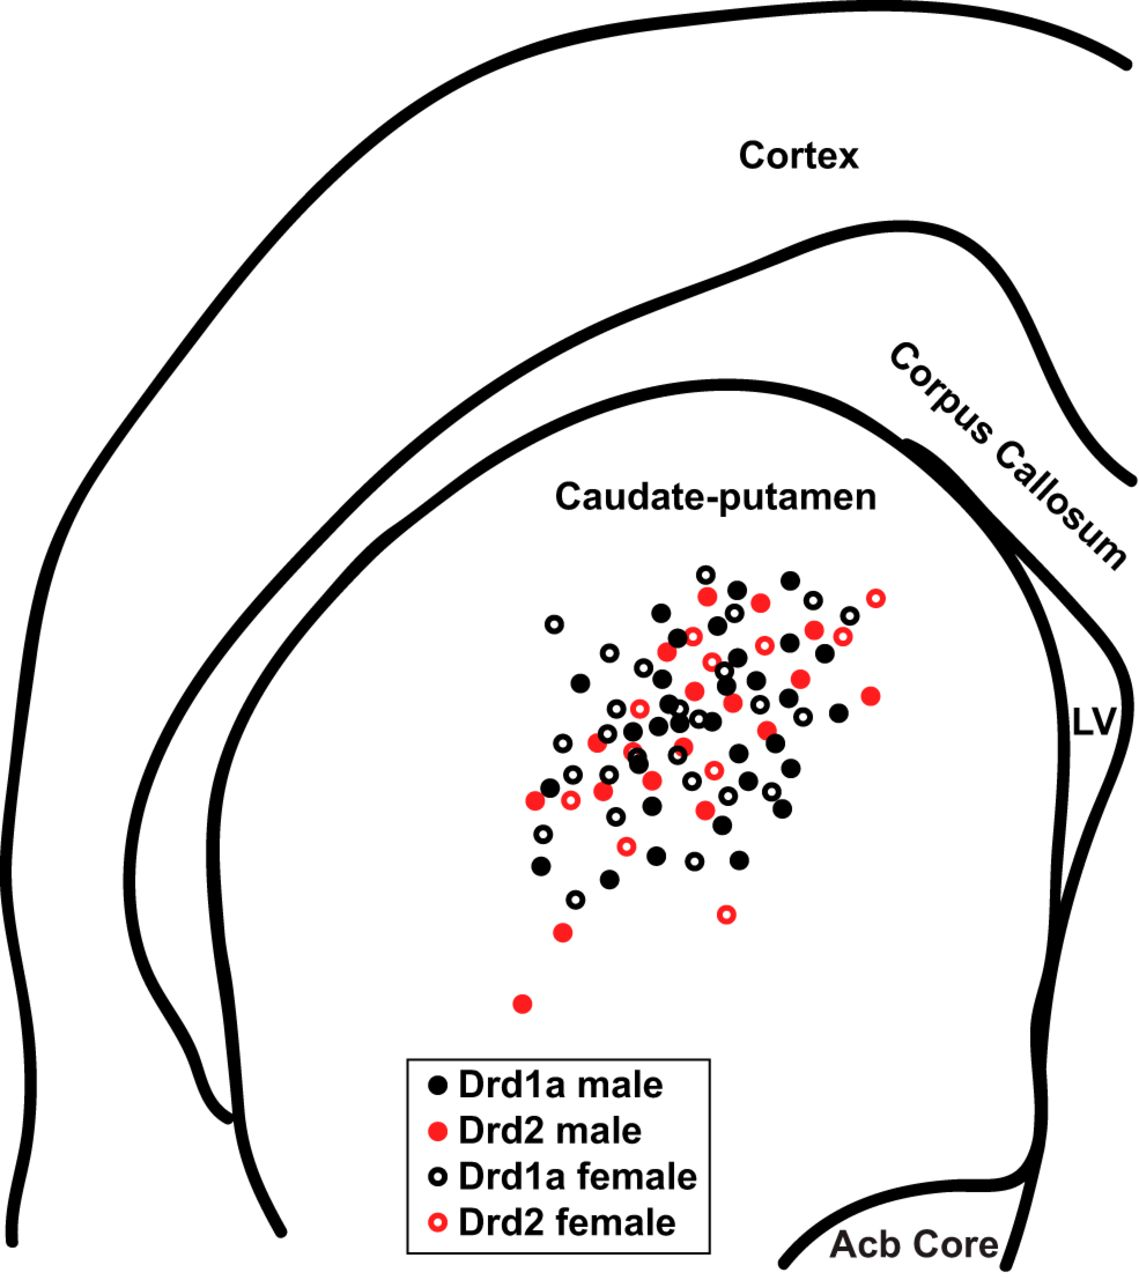 Electrophysiological Properties of Medium Spiny Neuron Subtypes in